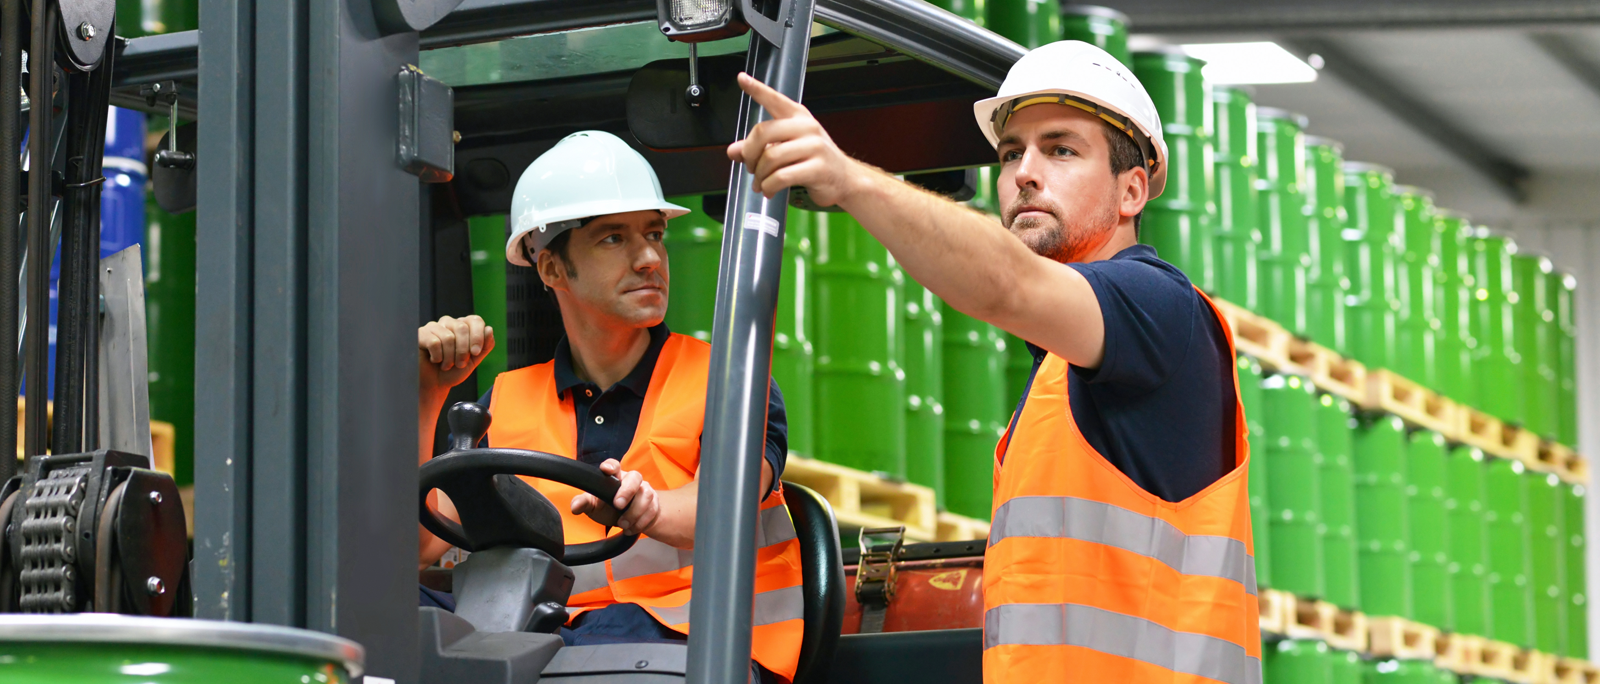 What Does A Warehouse Forklift Operator Do?